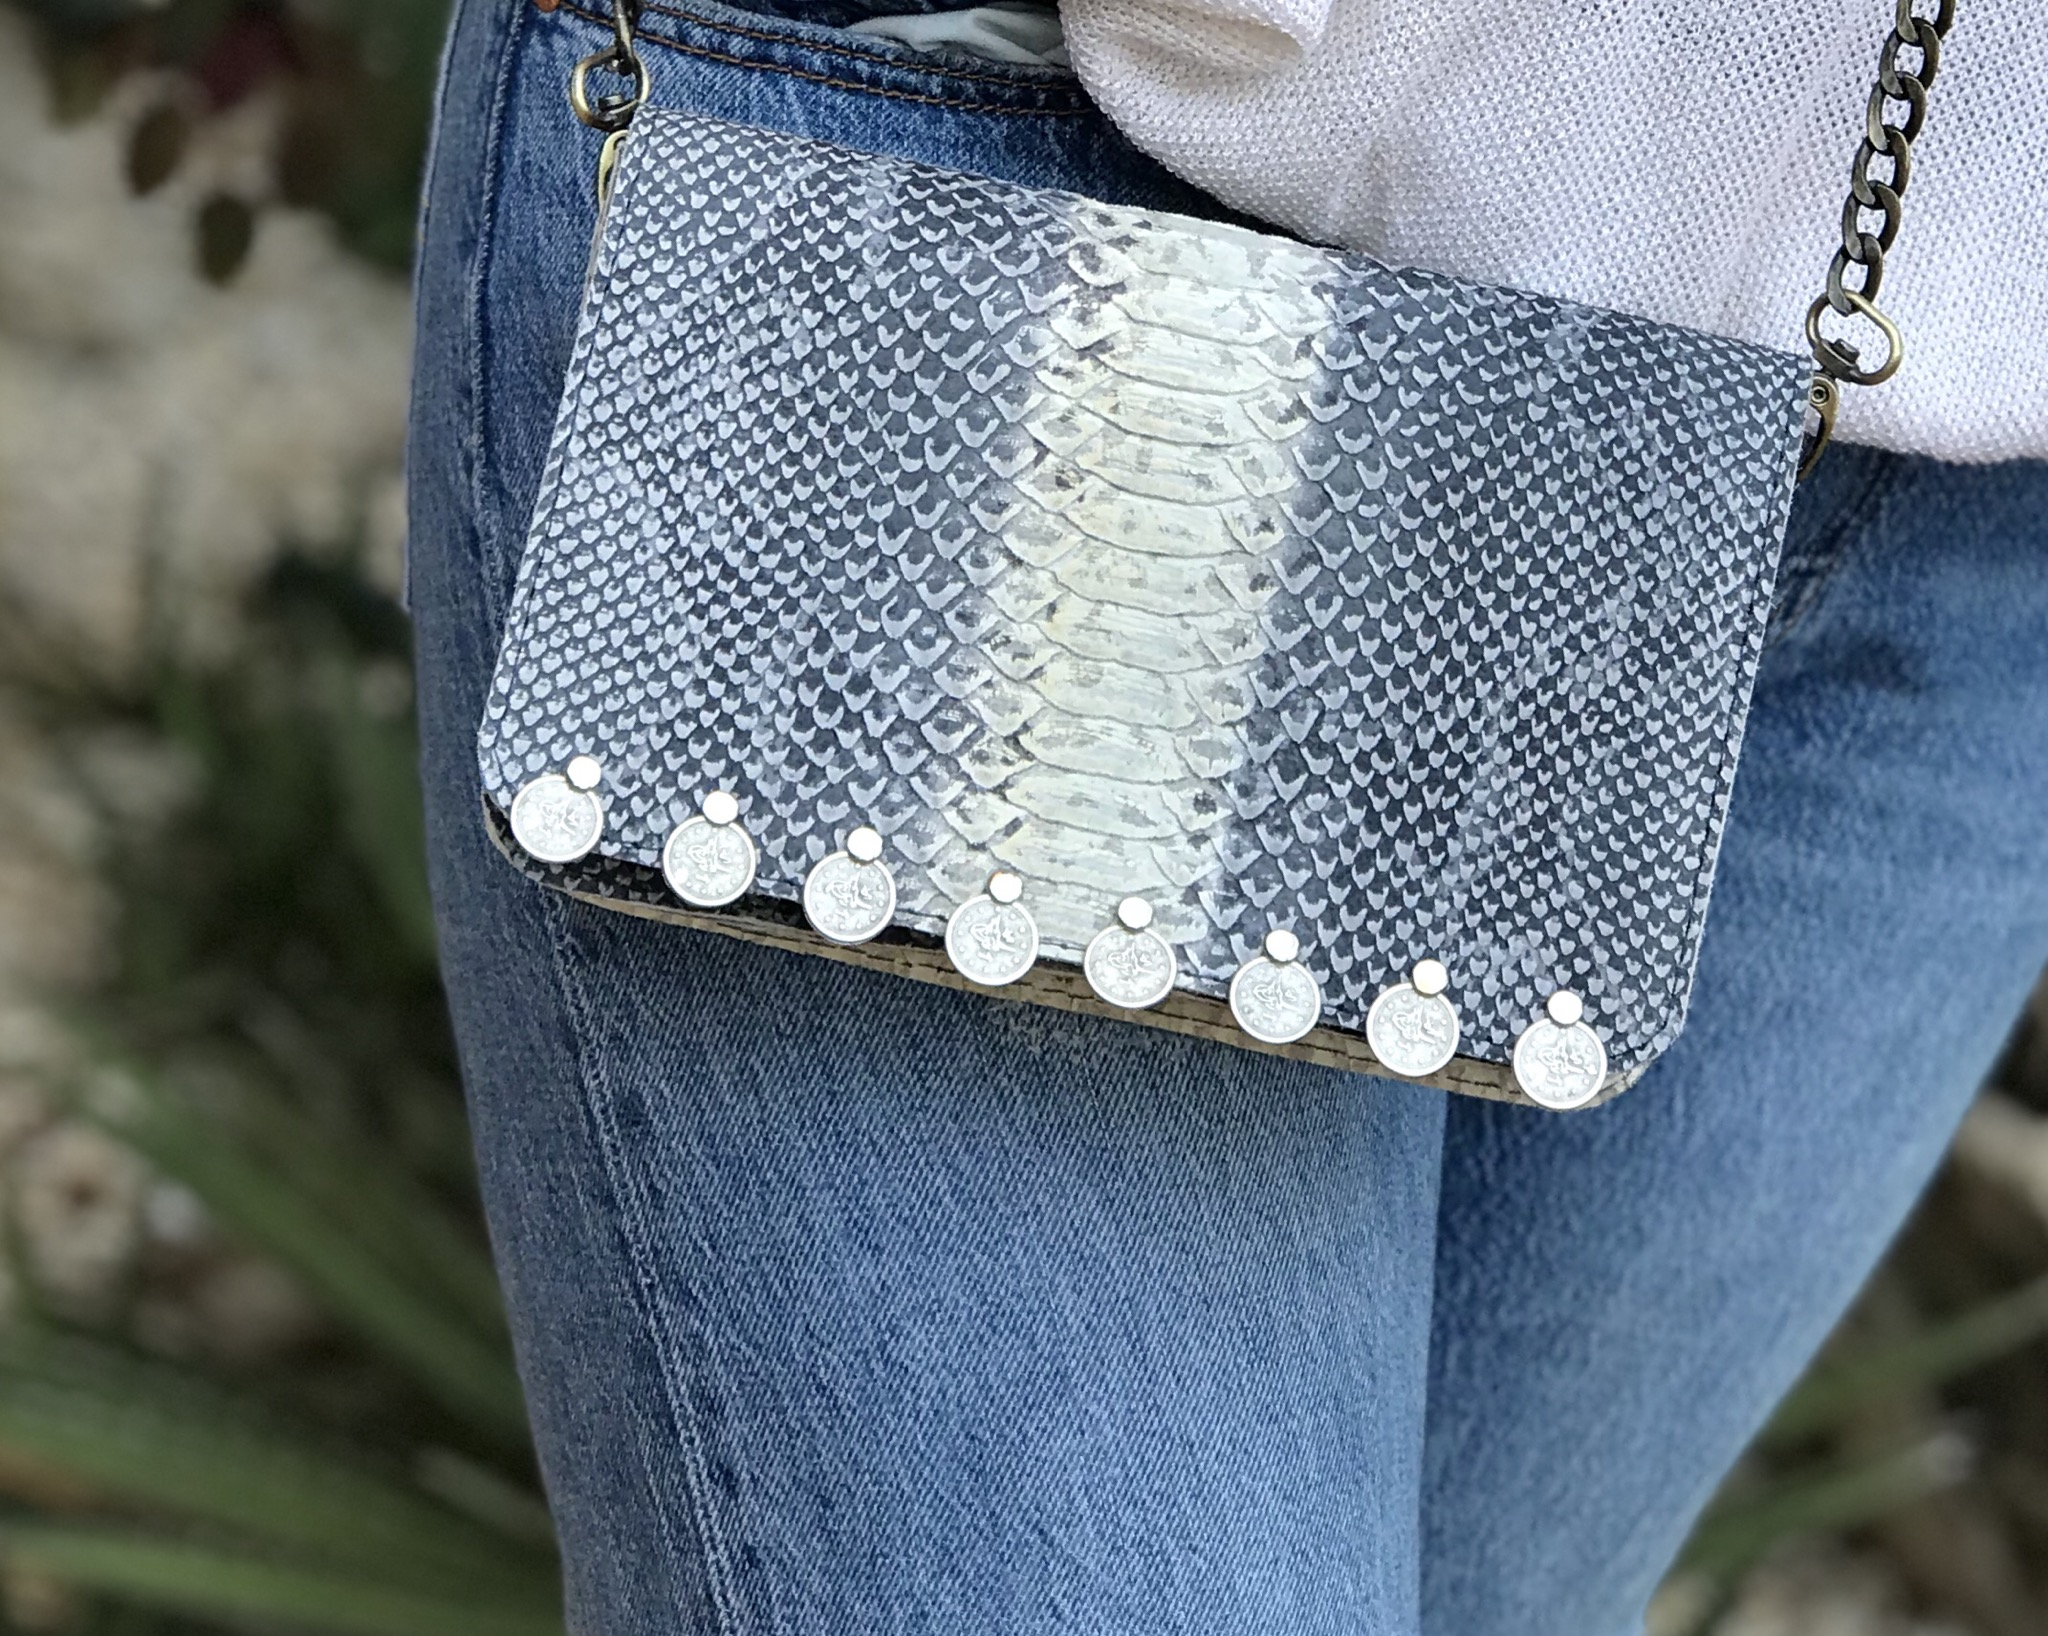 Bag mini leather croco blue white with coins